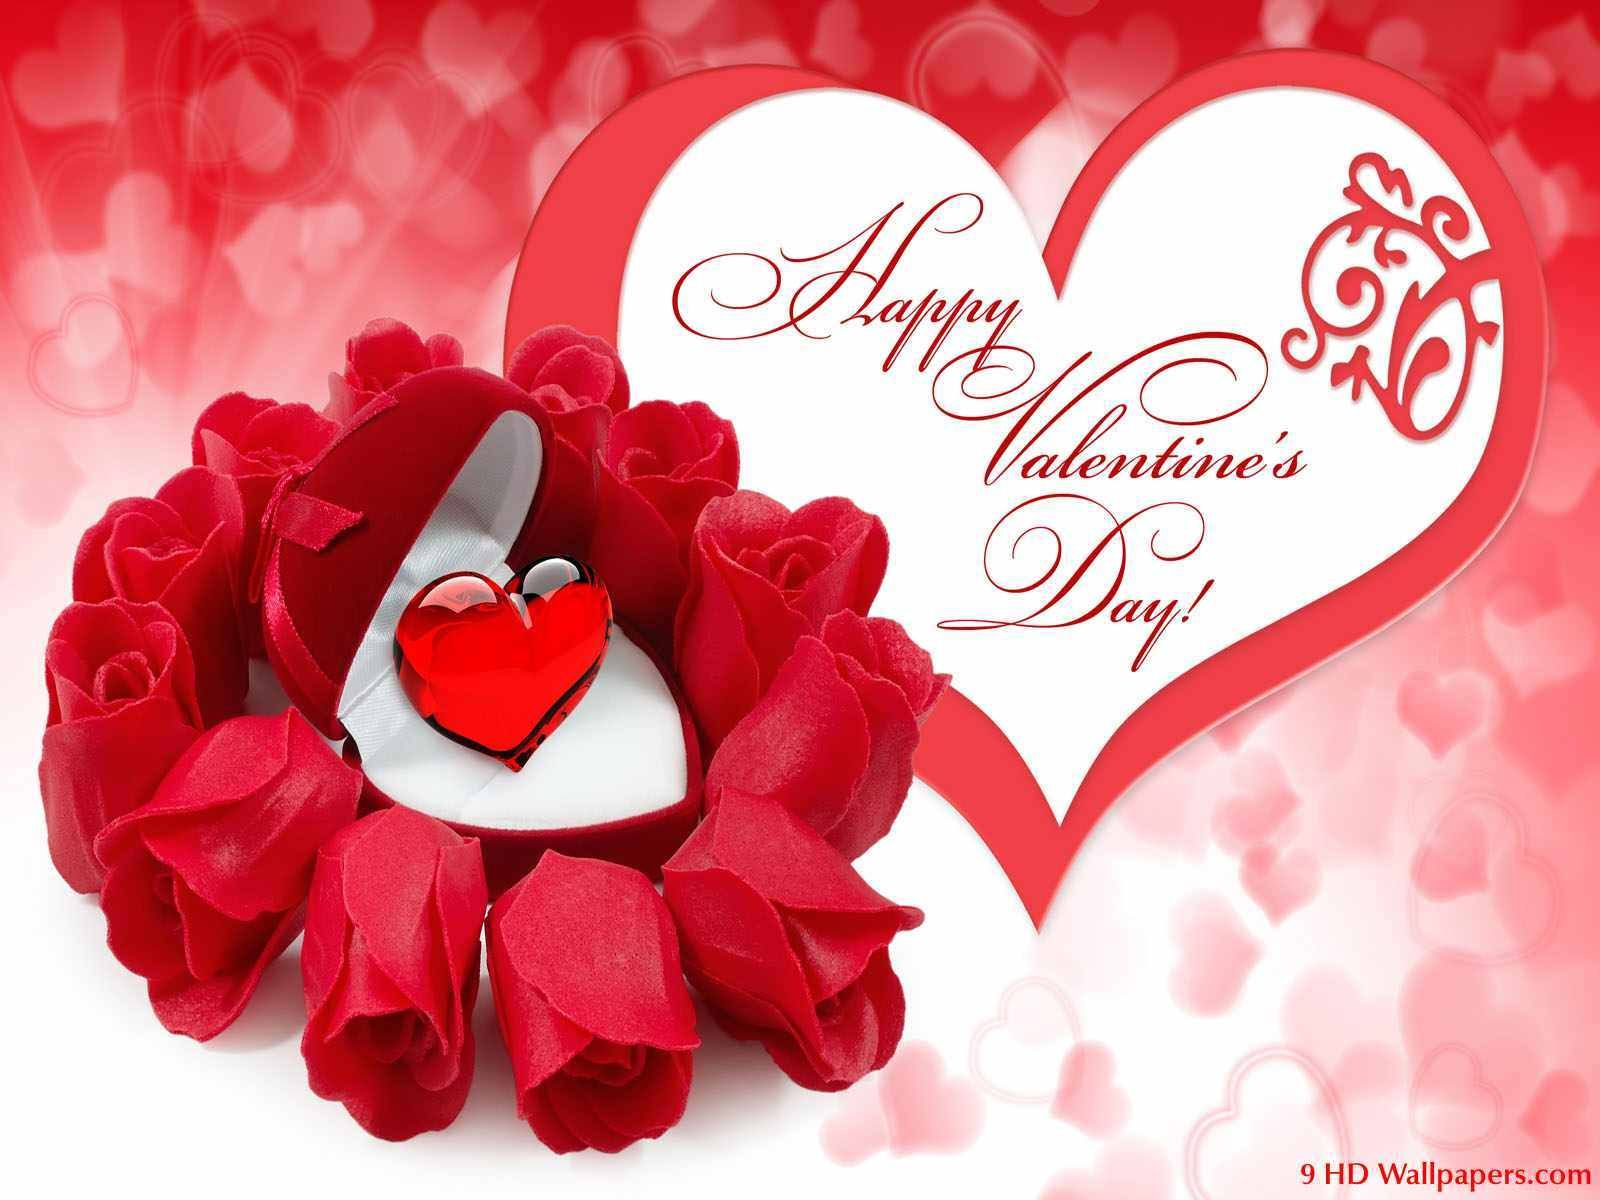 Happy Valentines Day Sms Me Messages Zorpia Valentines Day – Greeting Cards of Valentine Day